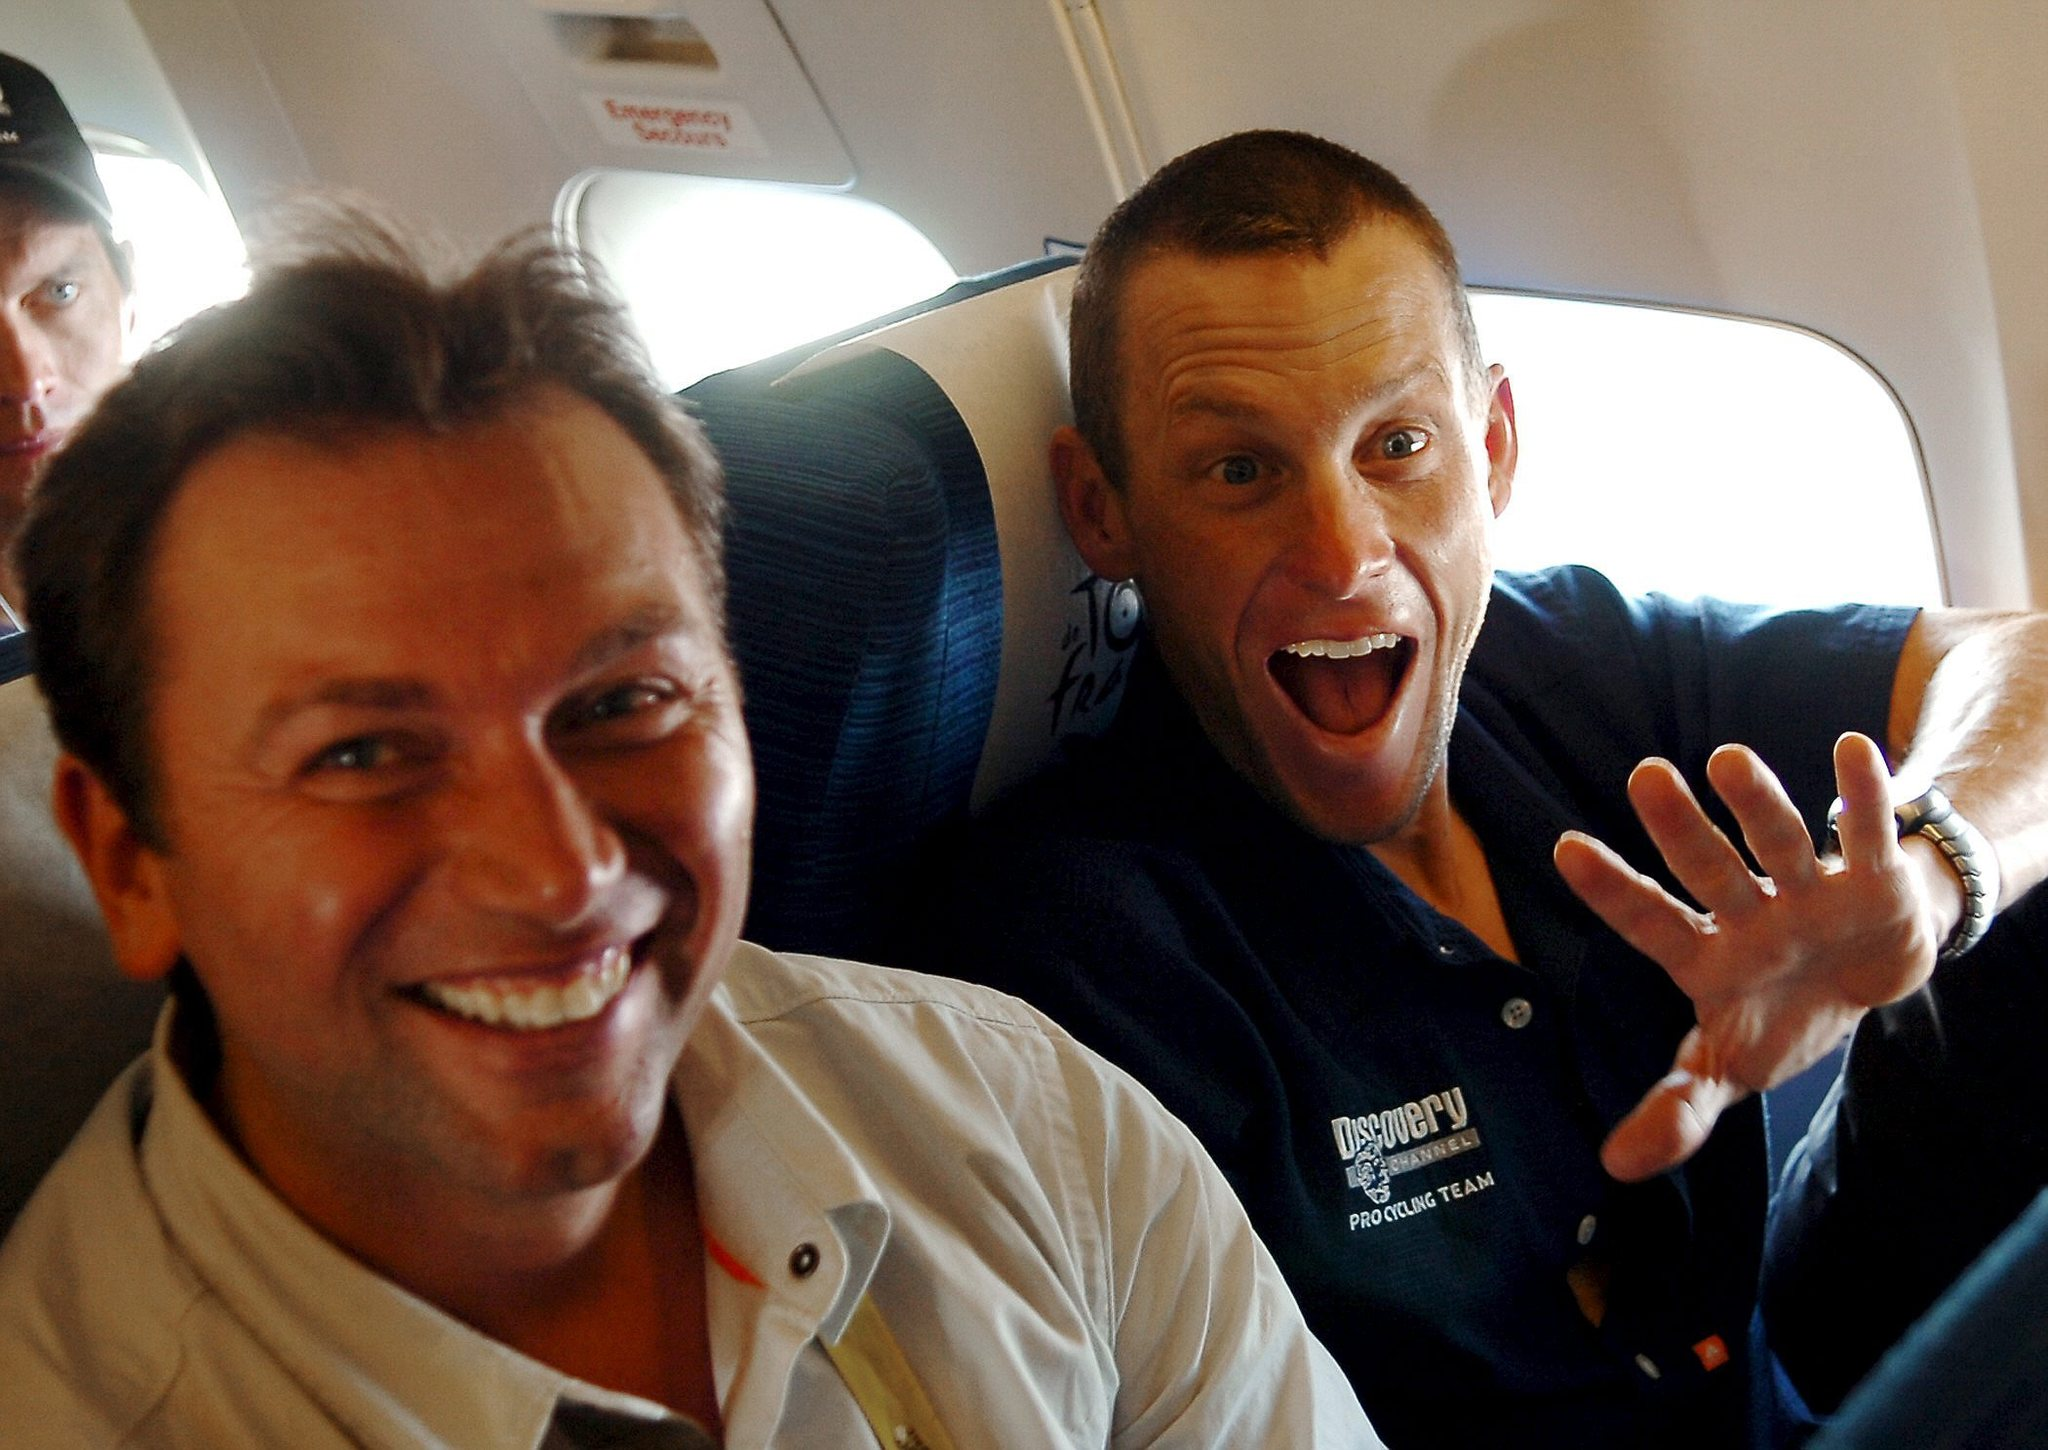 (FILES) In this photo dated on July 10, 2005 US Lance Armstrong (Discovery Channel/USA) and his team Director Johan lt;HIT gt;Bruyneel lt;/HIT gt; (L) joke during the flight to Grenoble from Mulhouse after the ninth stage of the 92nd Tour de France cycling race between Gerardmer and Mulhouse. Armstrongs former boss lt;HIT gt;Bruyneel lt;/HIT gt; leaves RadioShack-Nissan, the team announced on October 12, 2012. AFP PHOTO POOL PASCAL RONDEAU